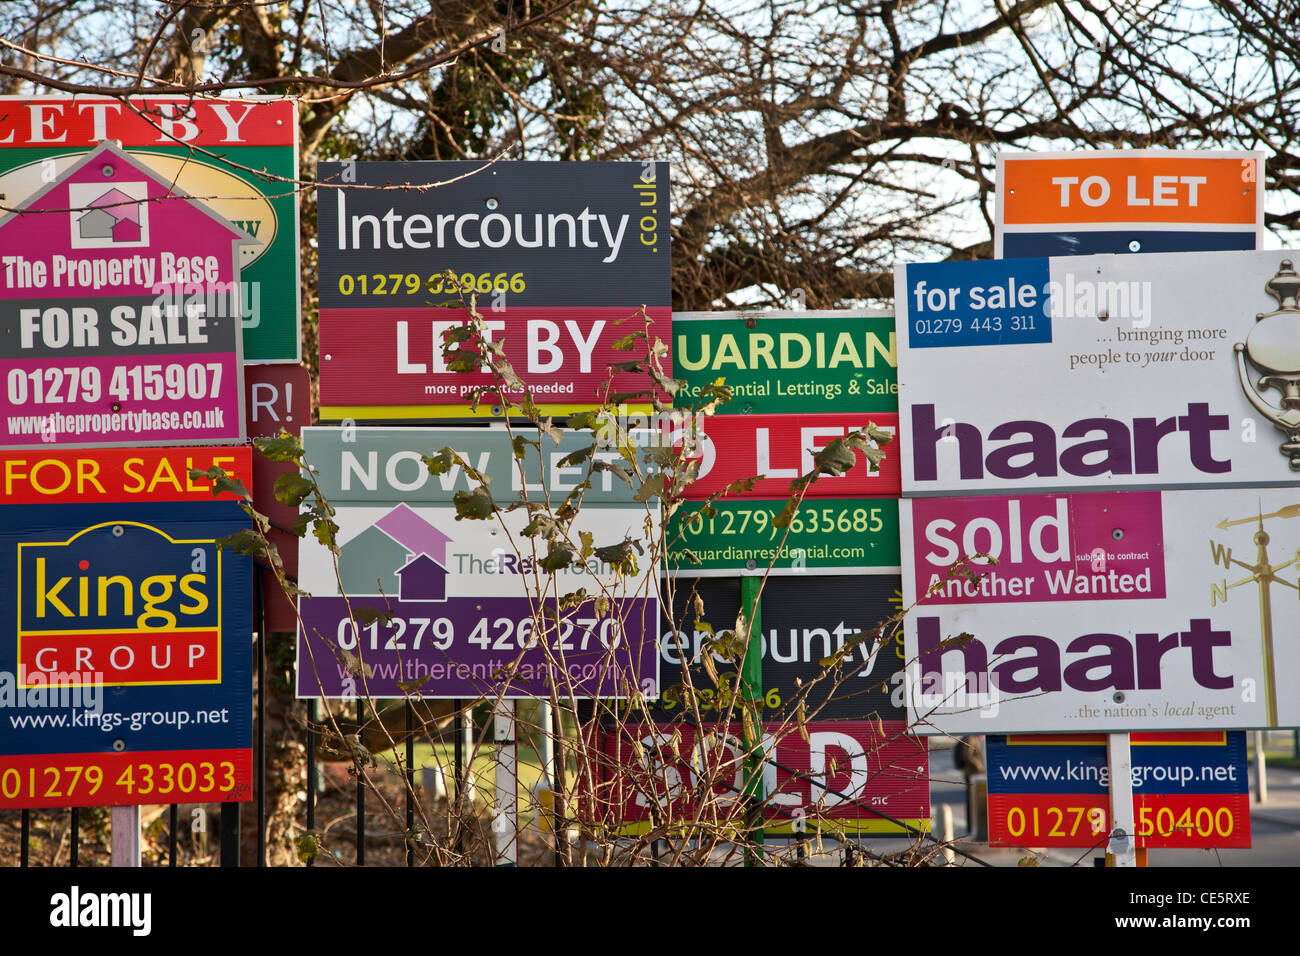 Letting Agent Stock Photos & Letting Agent Stock Images - Alamy